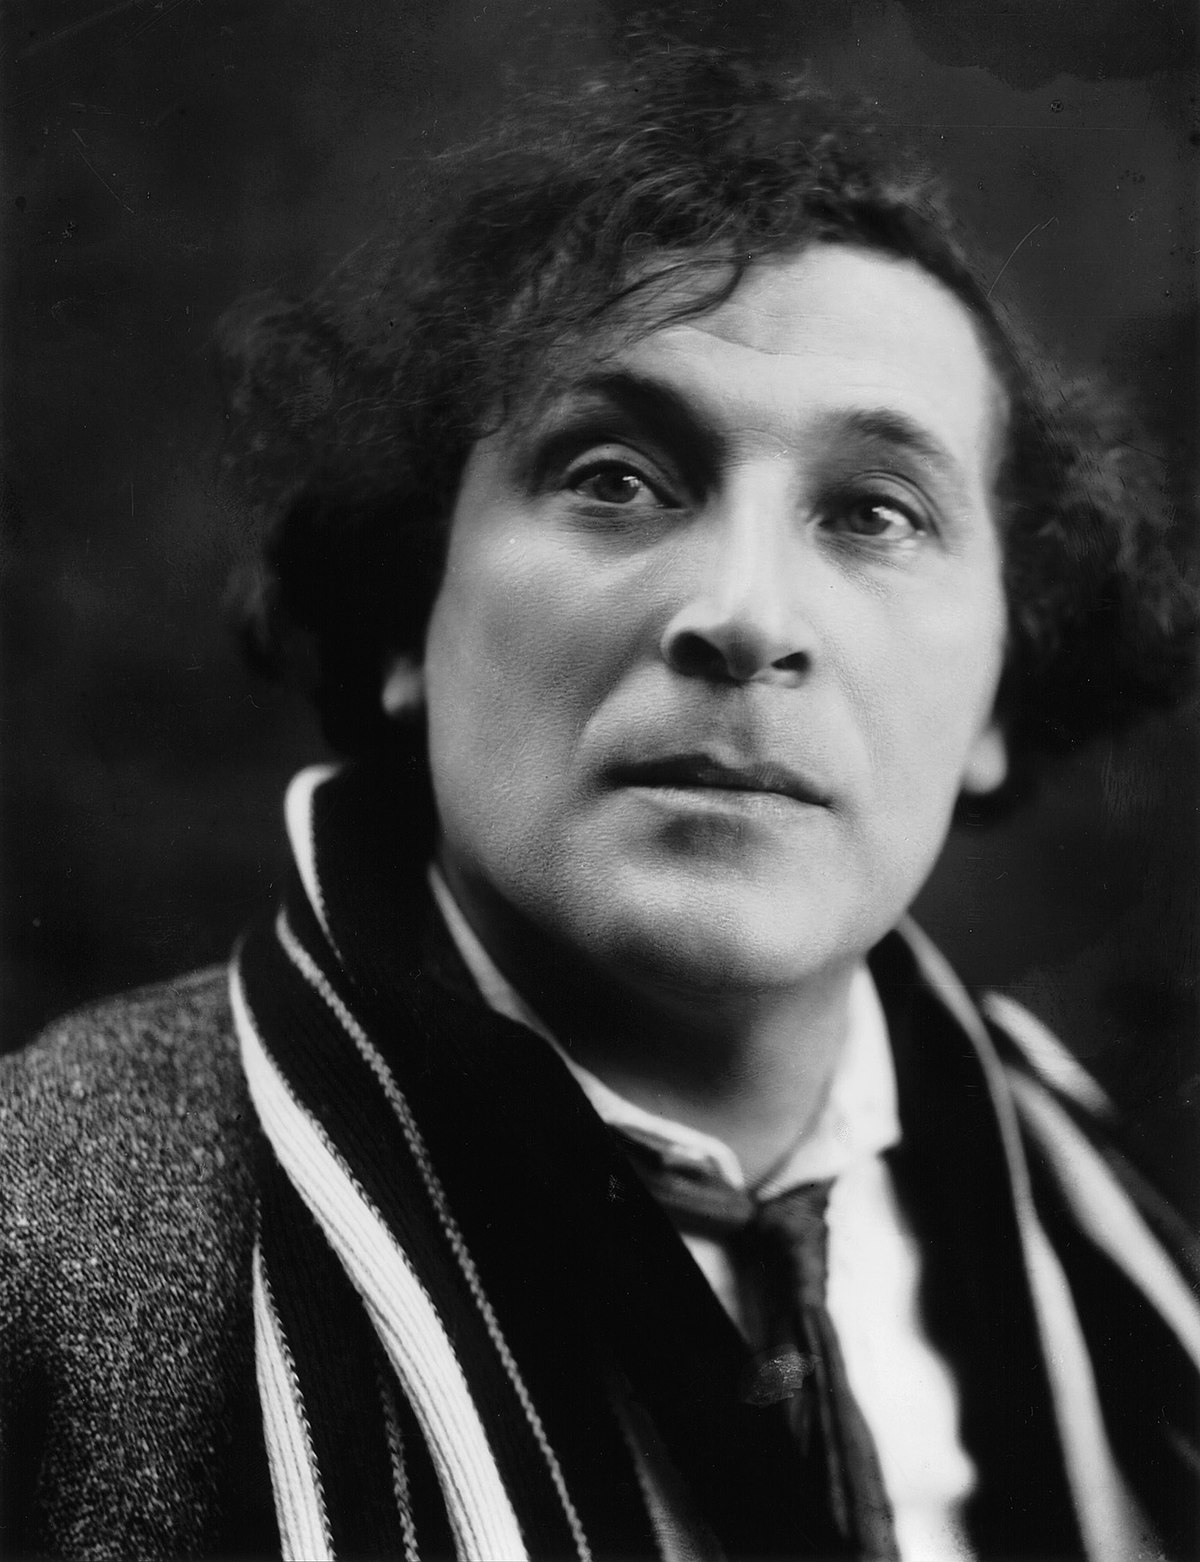 marc chagall paris : marc chagall new york :  marc chagall notting hill en 2020/2021